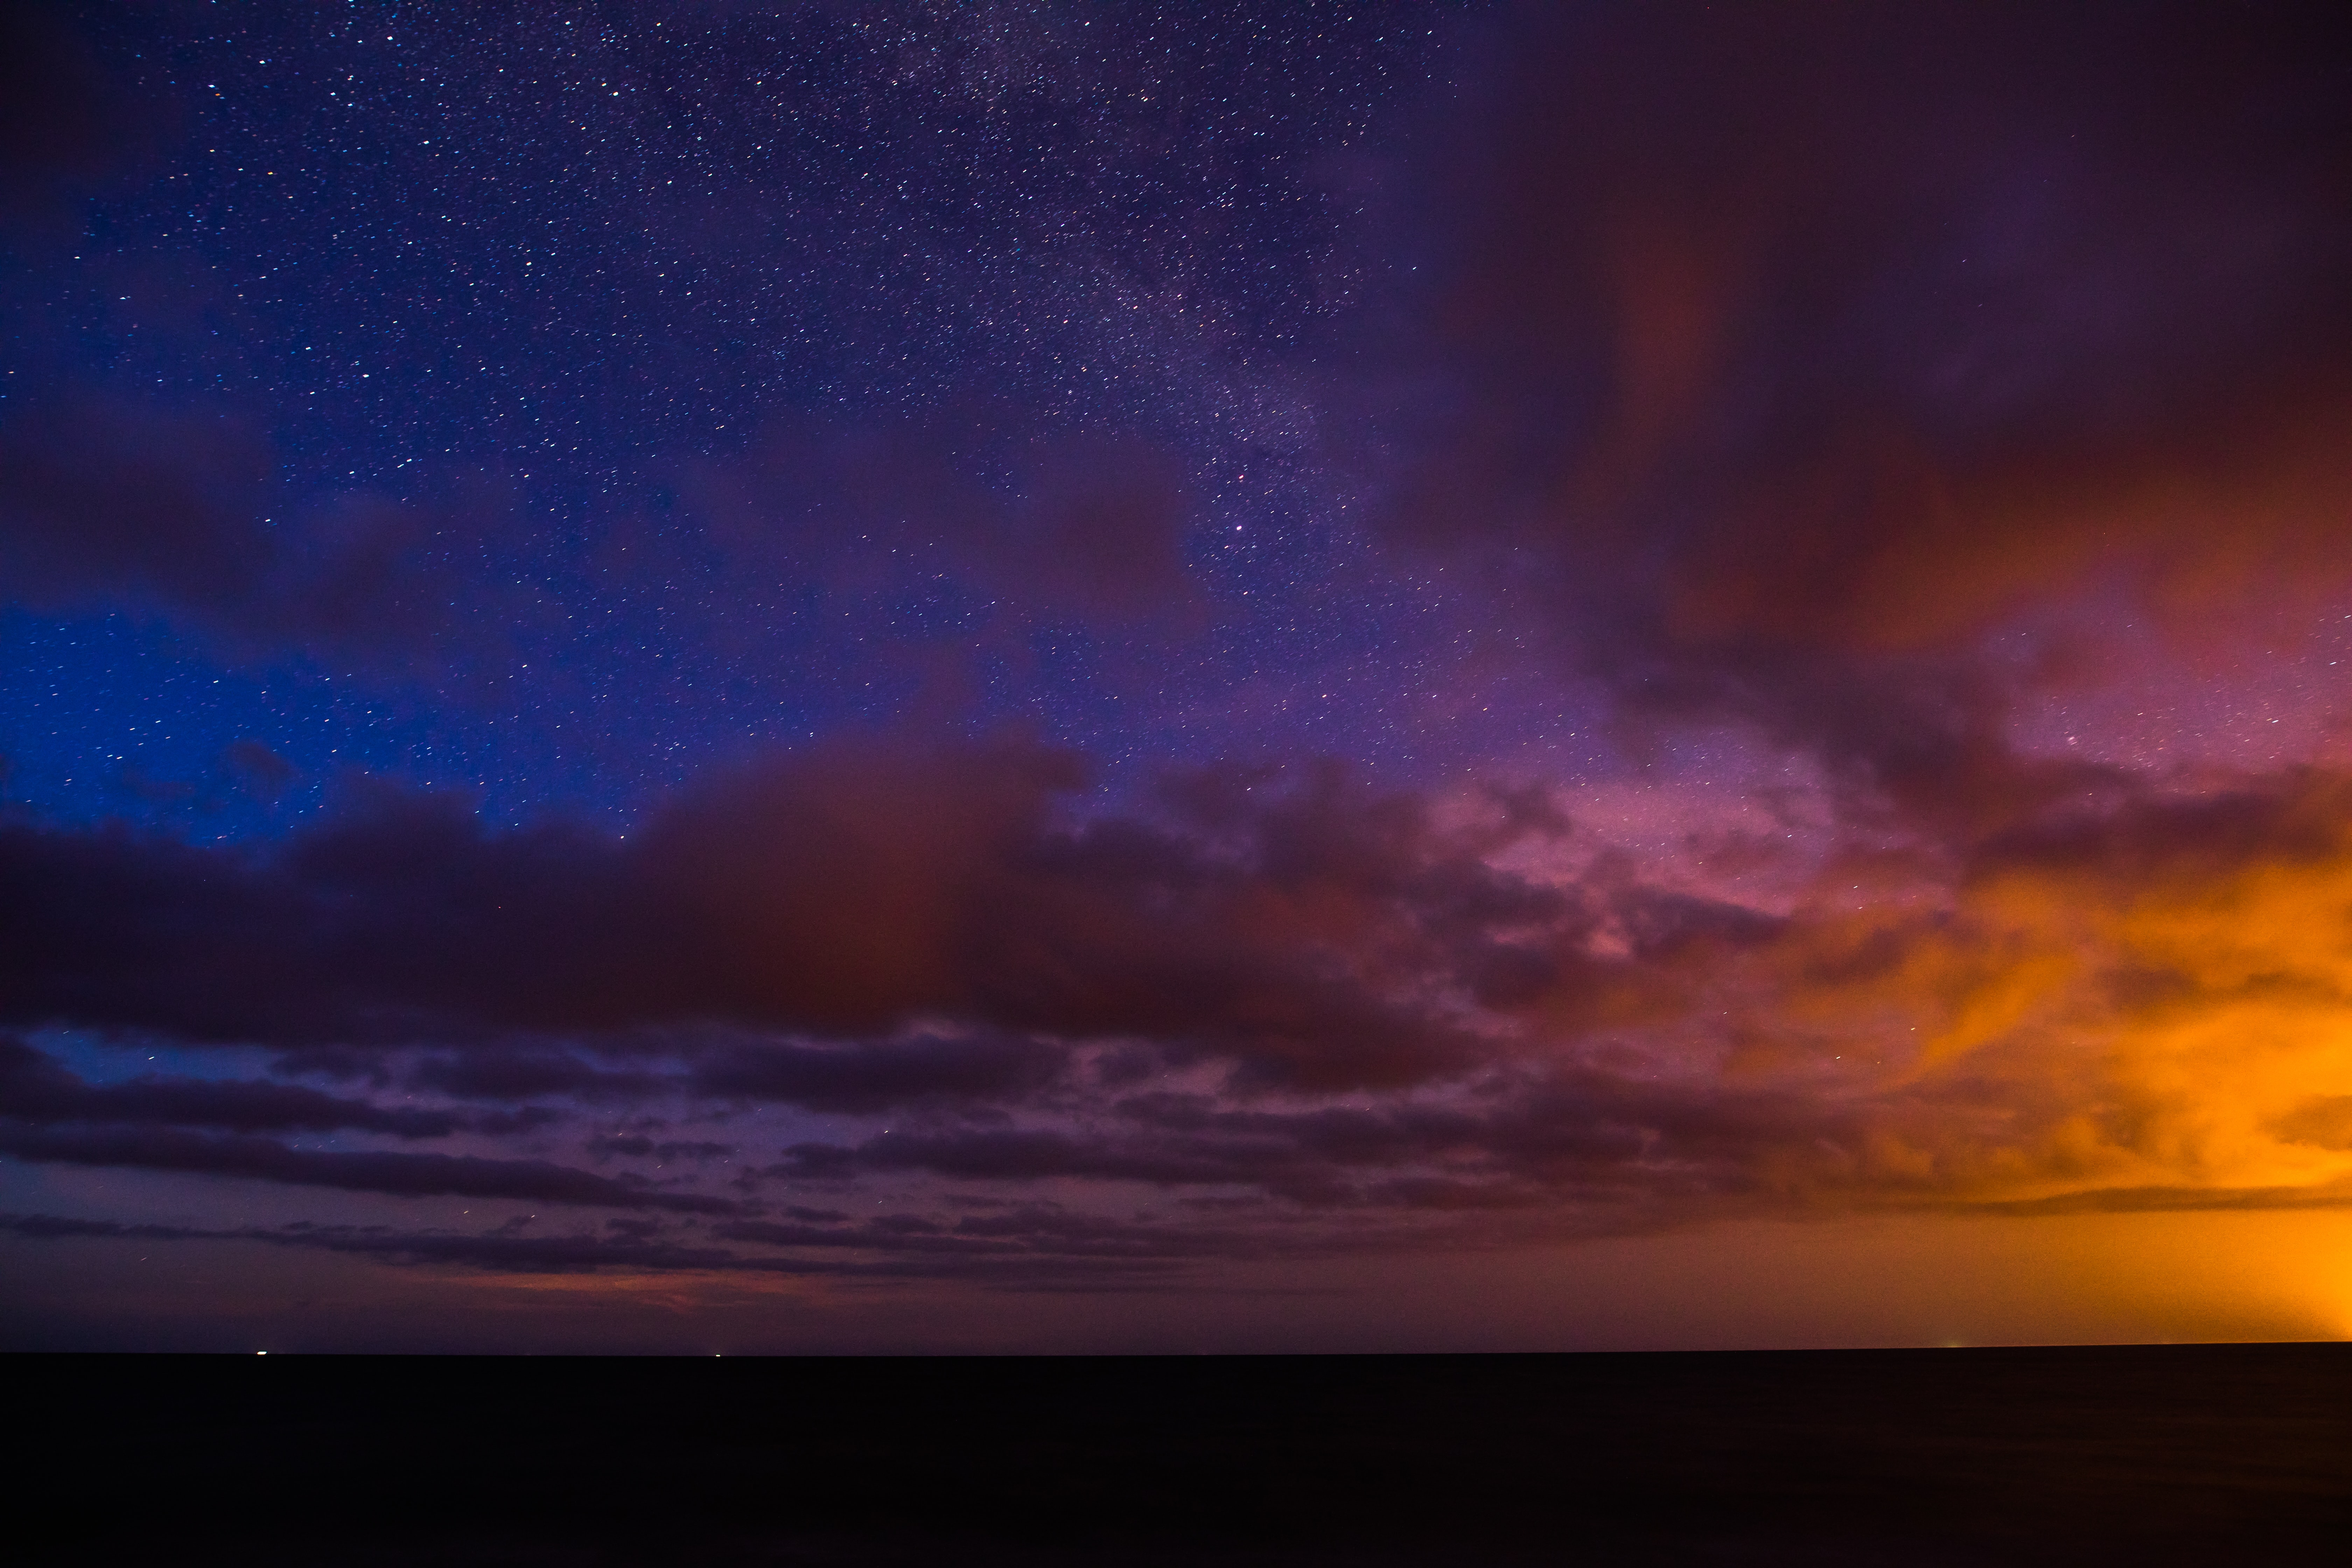 Moody deep sunset with navy, jewel purple, and orange against dark clouds at Draghanstown.